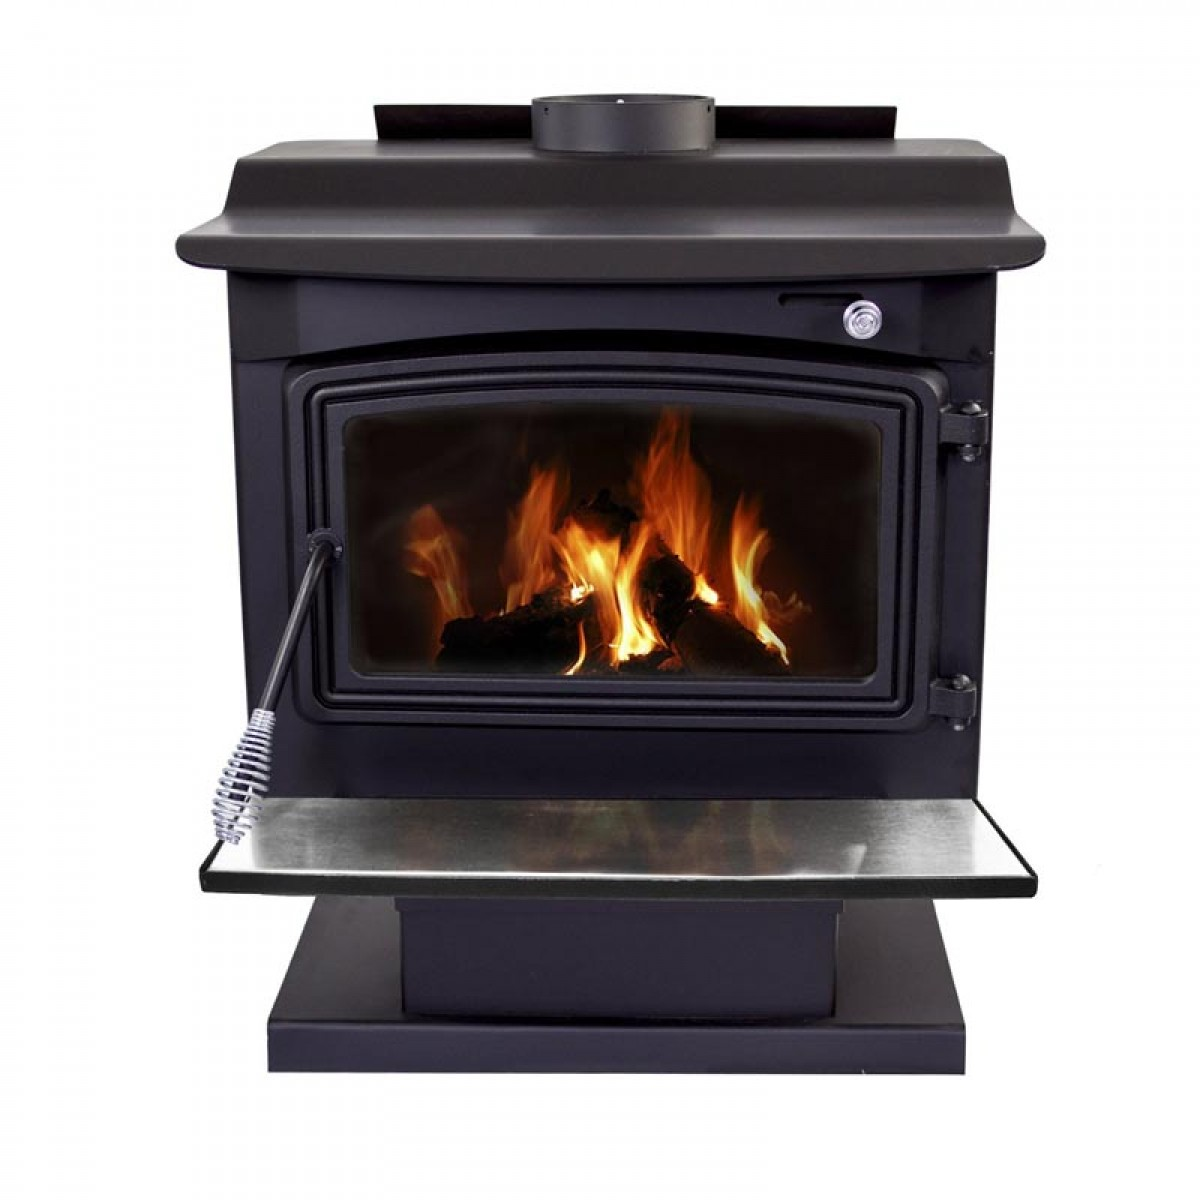 Pleasant Hearth Large Wood Burning Stove With Pedestal